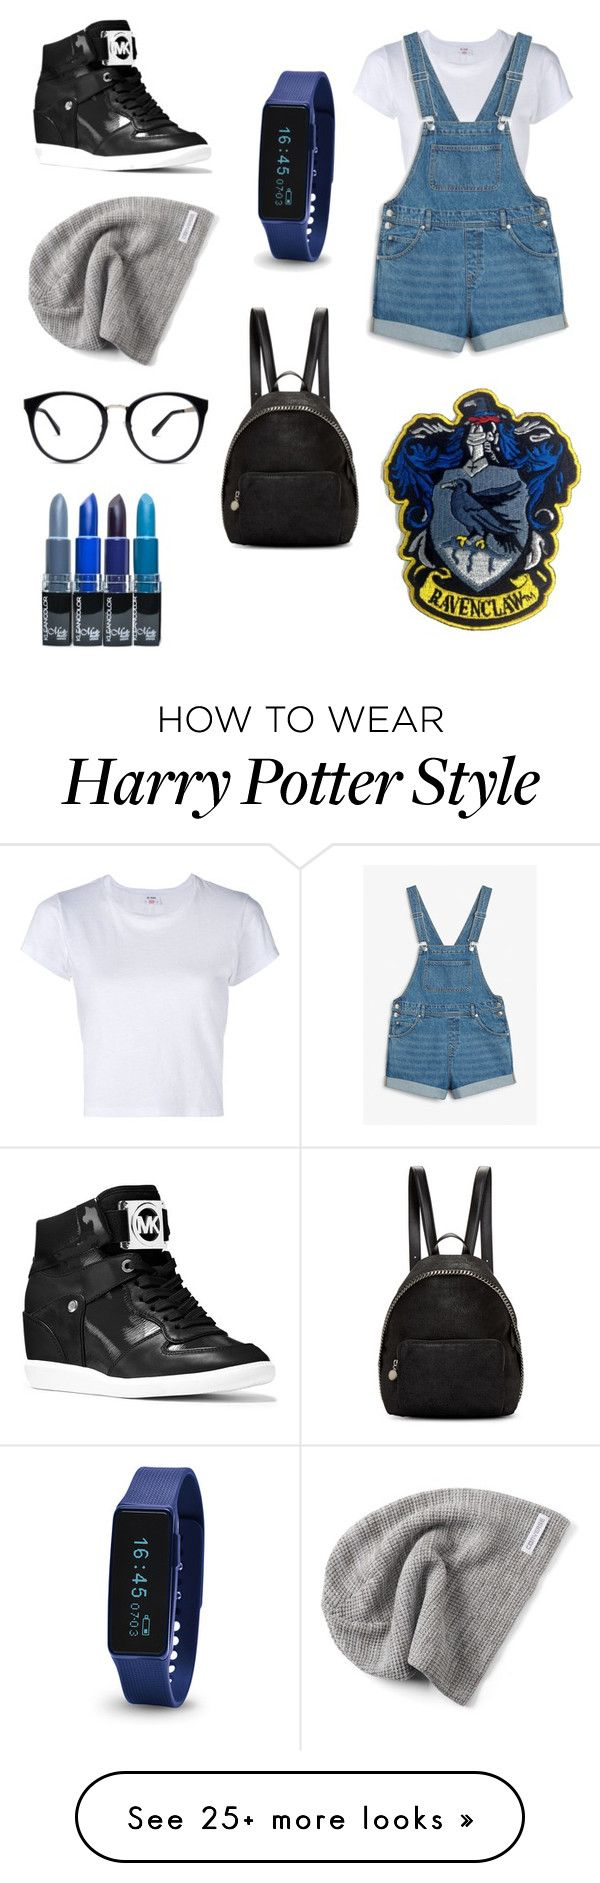 """Playful Ravenclaw - Minded Girl"" by hyperxactive on Polyvore featuring Converse, RE/DONE, Monki, STELLA McCARTNEY and MICHAEL Michael Kors"